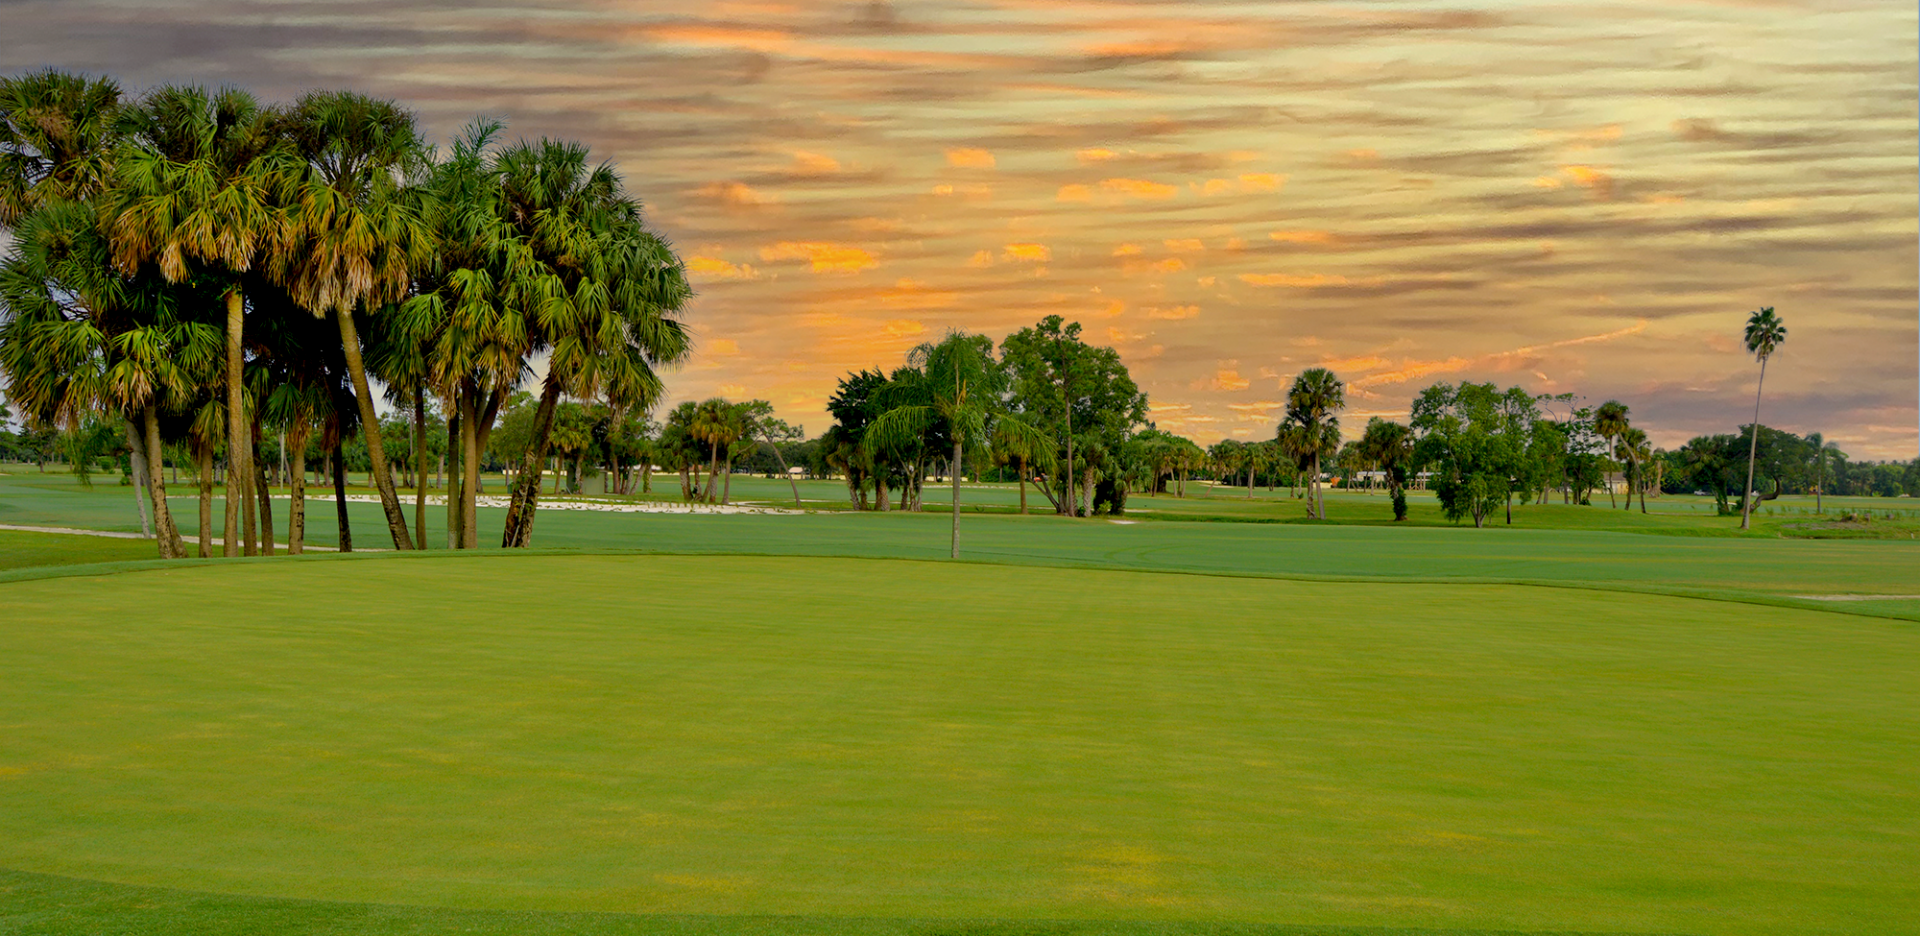 The course at Sailfish Sands Golf Course